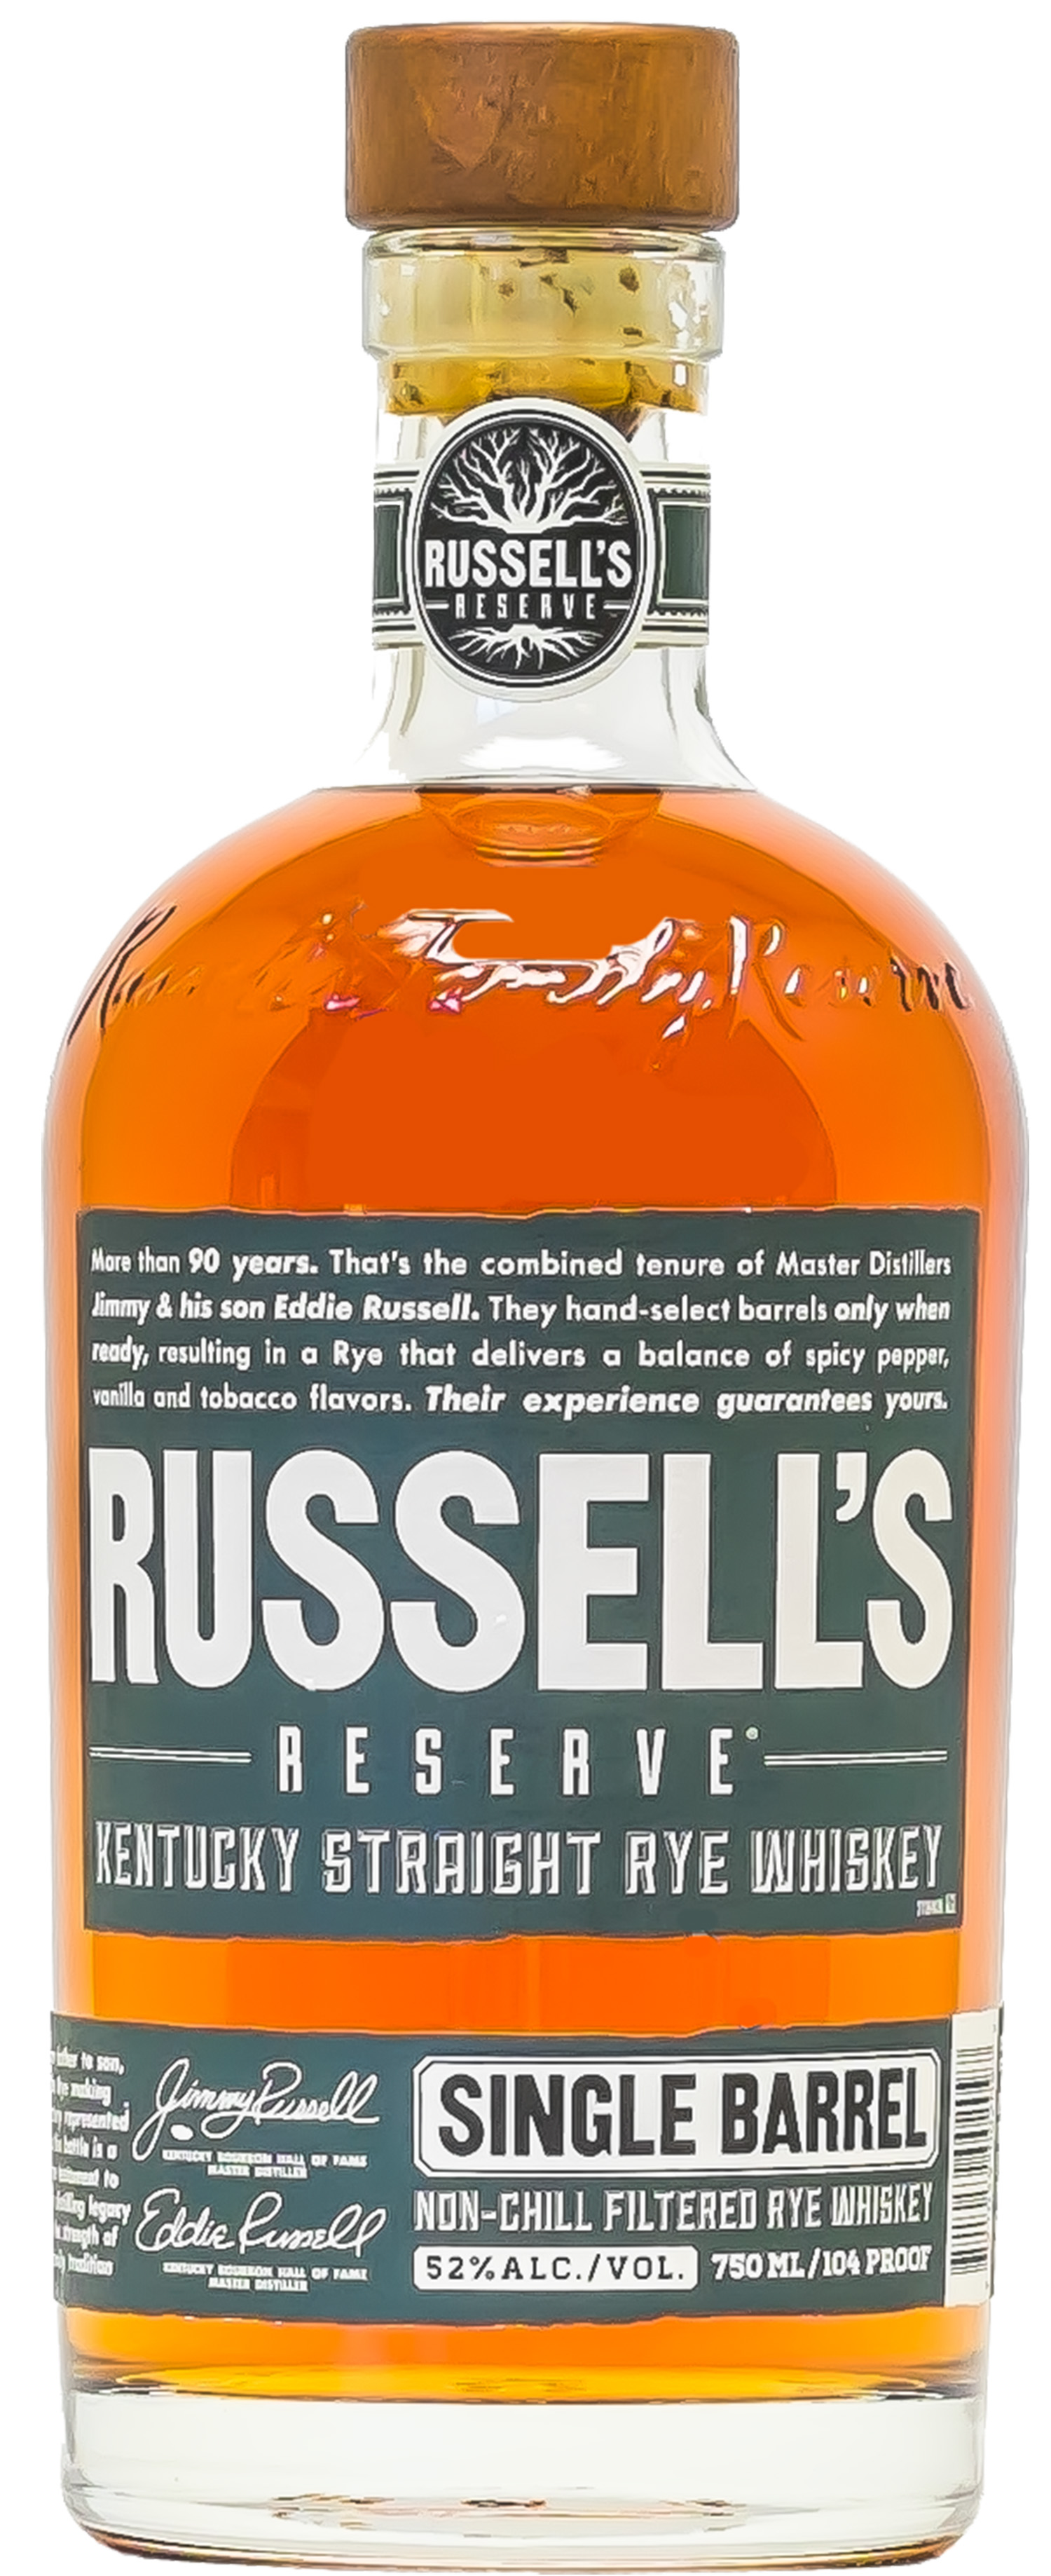 Russell's Reserve Unveils Single Barrel Rye Whiskey